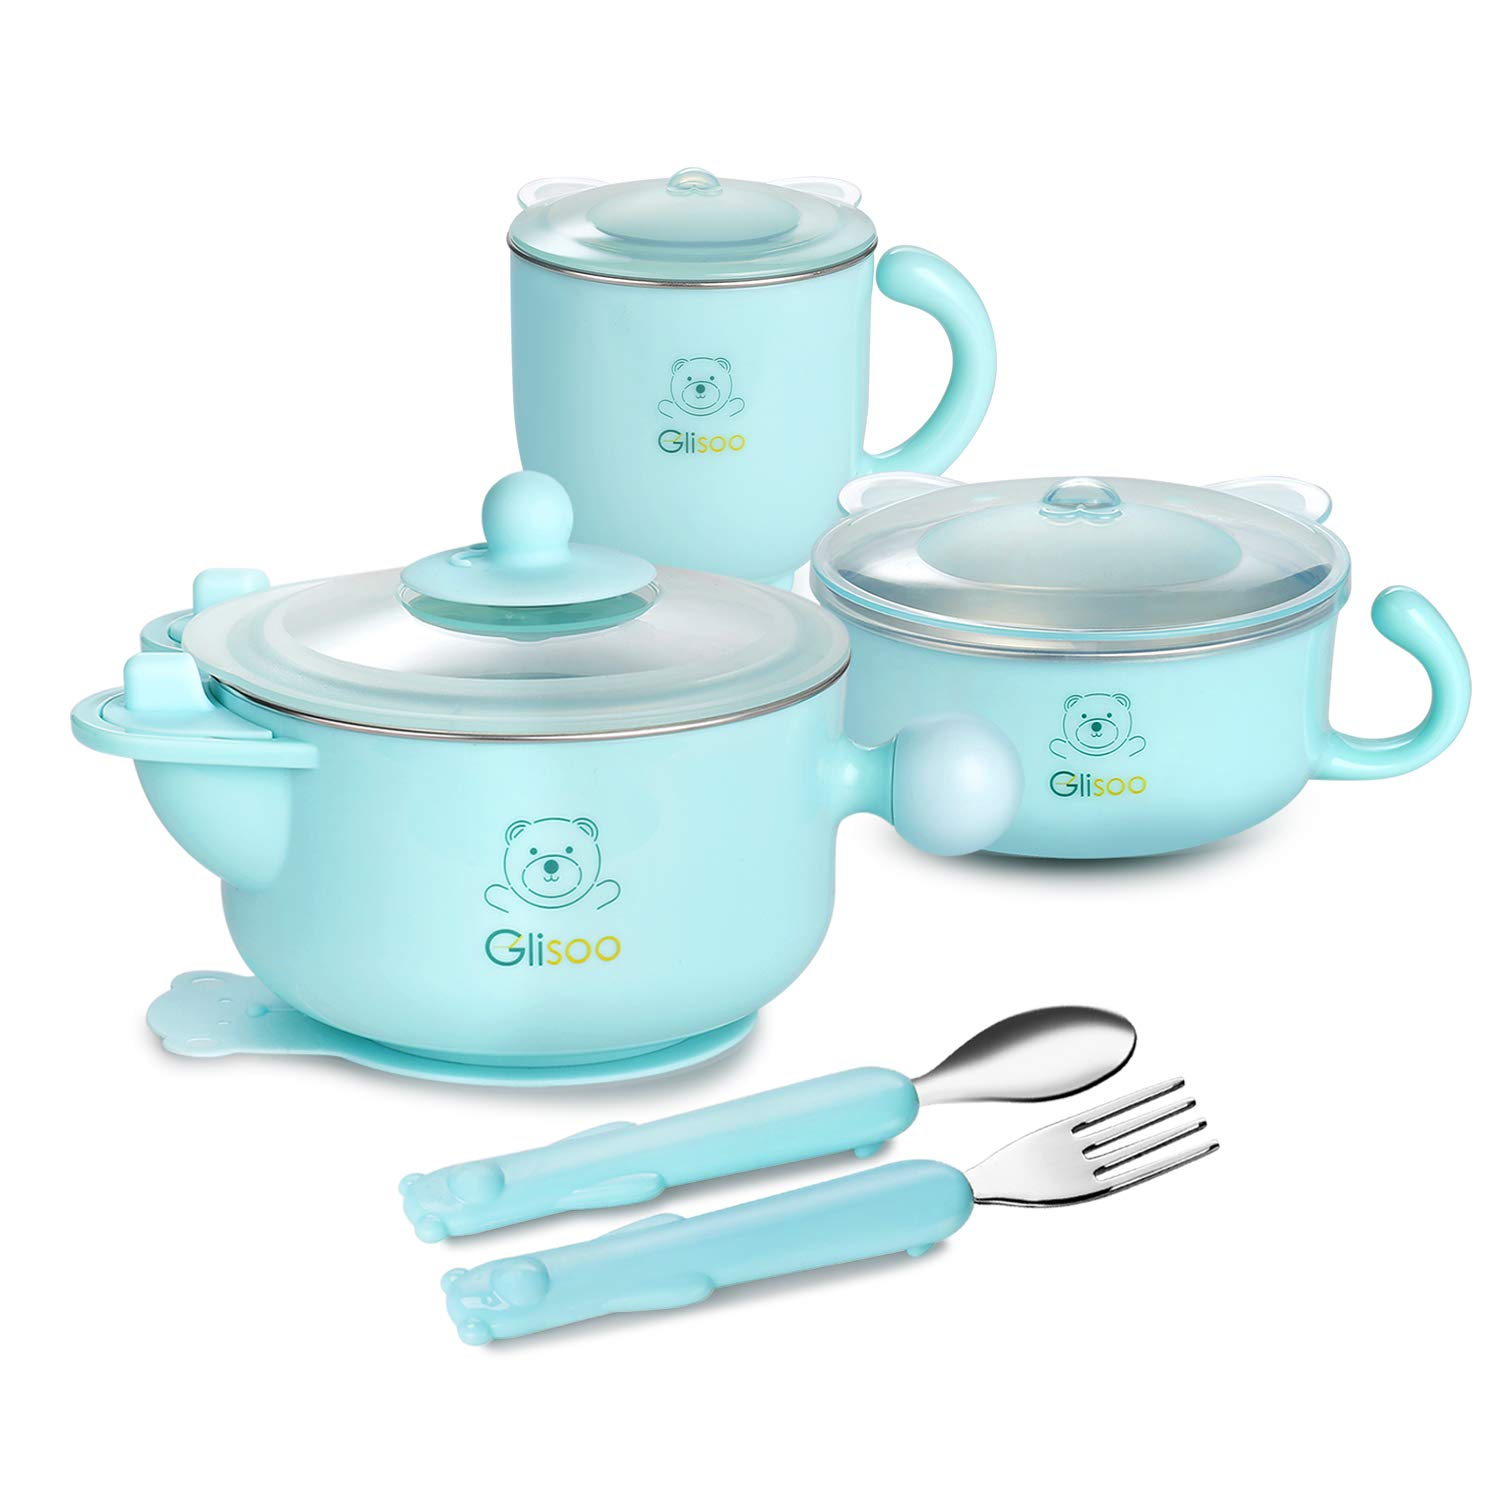 BPA Free Baby Feeding Set, Feeding Bowl with Lid, Salad Bowl, Milk Cup,Spoon and Fork for 6m Toddlers,316 Stainless Steel,Gift Set Tableware Set by Glisoo Mint Green